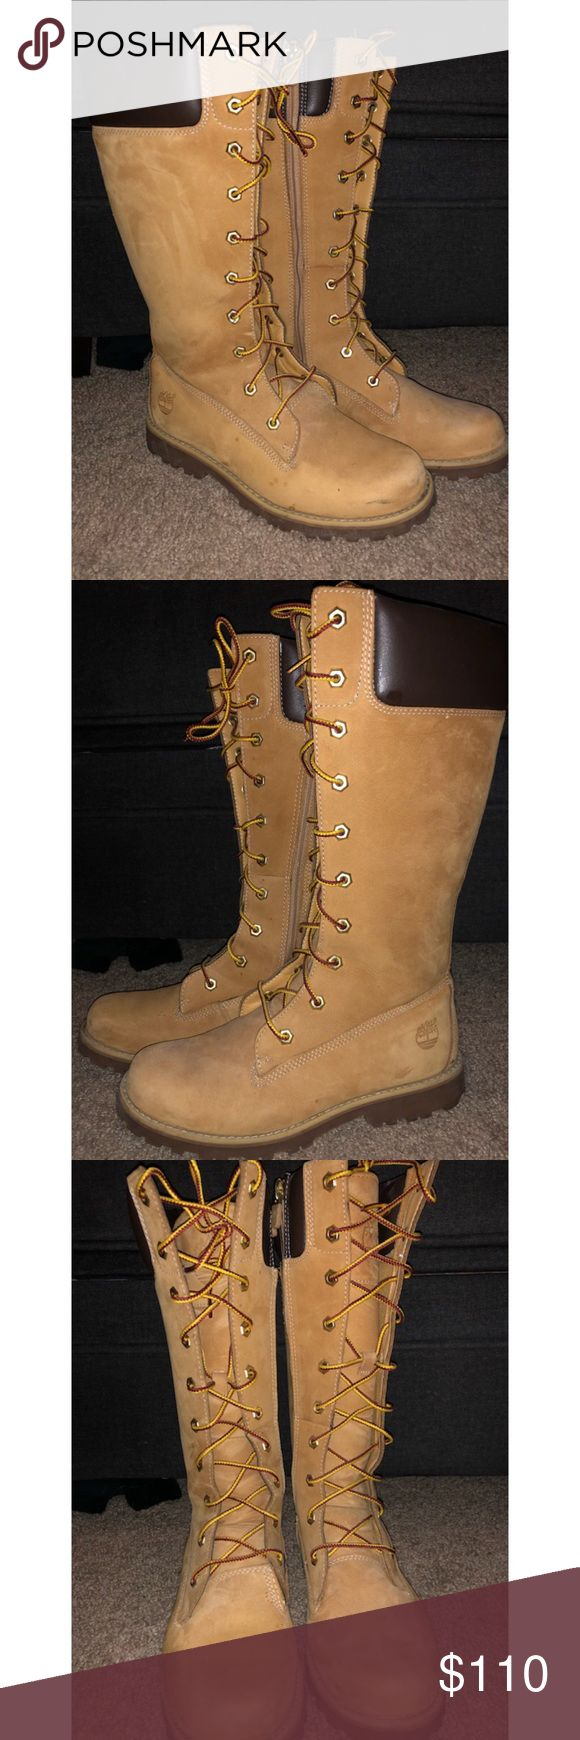 """Timberland Earthkeepers Premium 14"""" Zip Timberland Earthkeepers Premium 14"""" Zip - Wheat Leather Lace-Up Knee-High Boot 100% authentic. Size 5 Gently used. Some water spotting. Loose stitching. Good condition. No trades Timberland Shoes Combat & Moto Boots"""